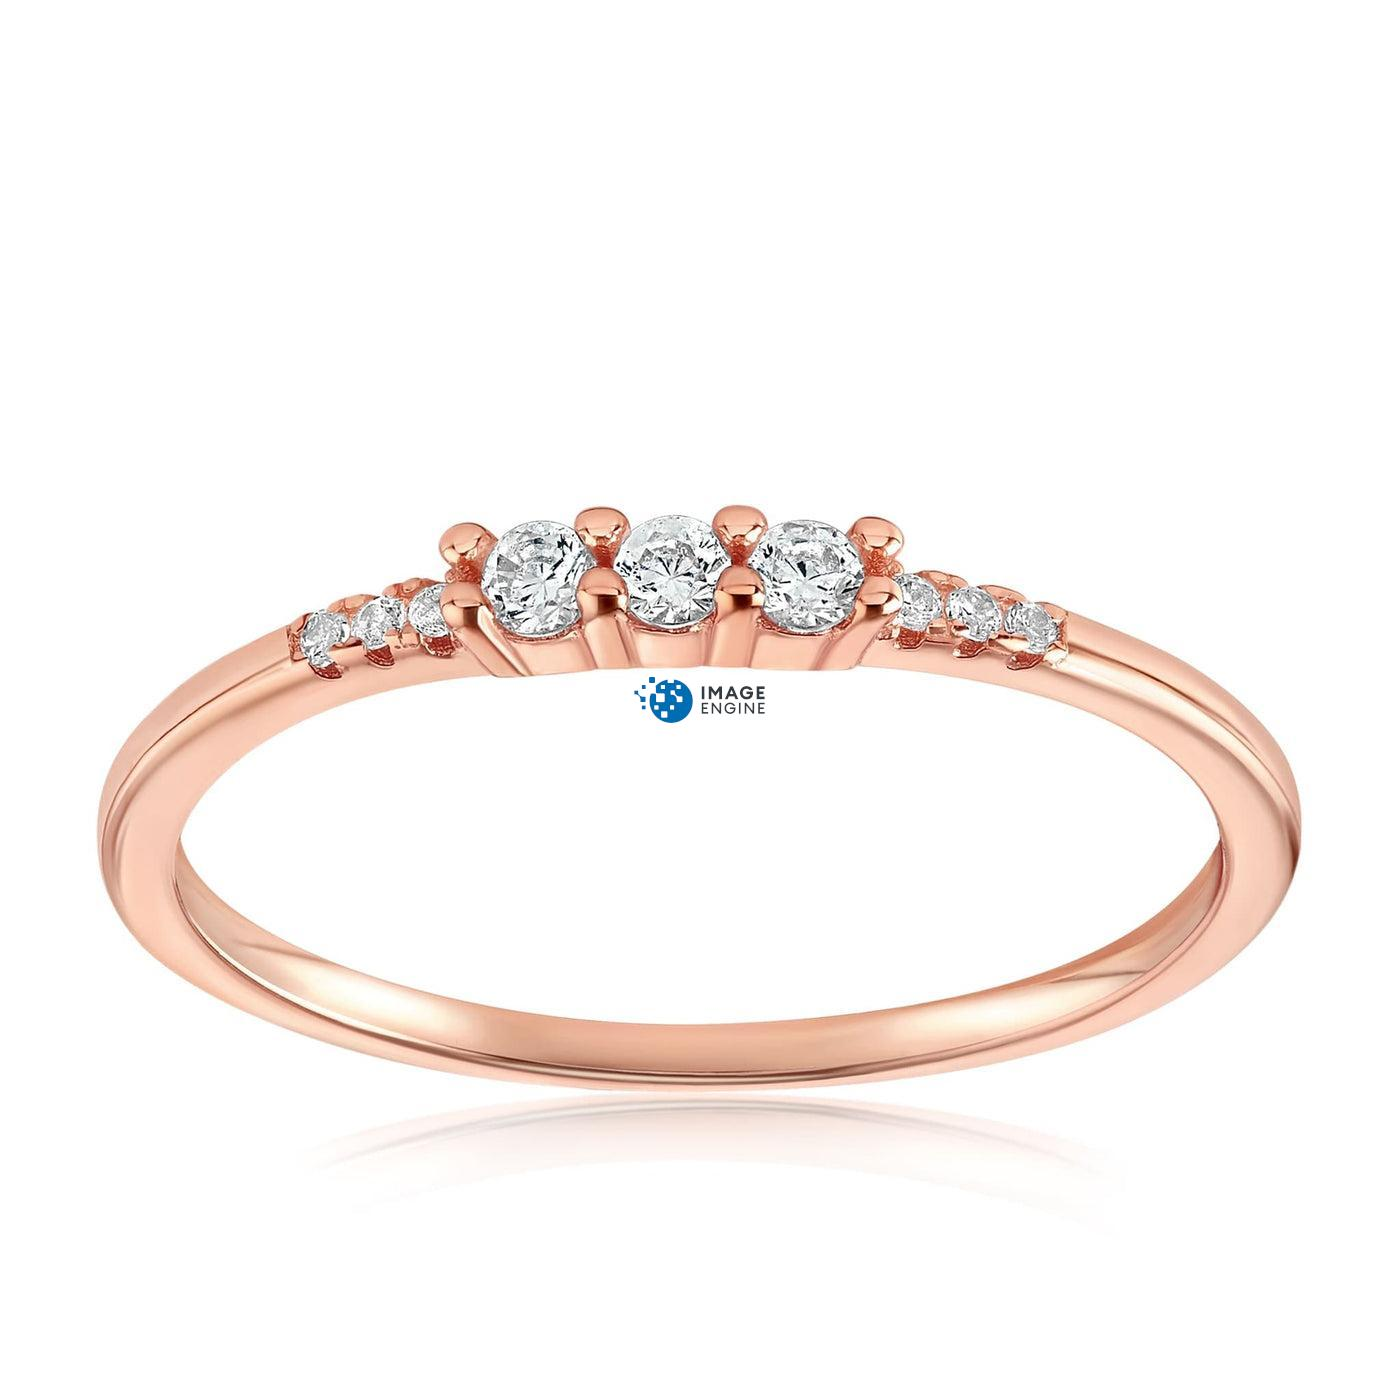 Emie Ring - Front View Facing Up - 18K Rose Gold Vermeil